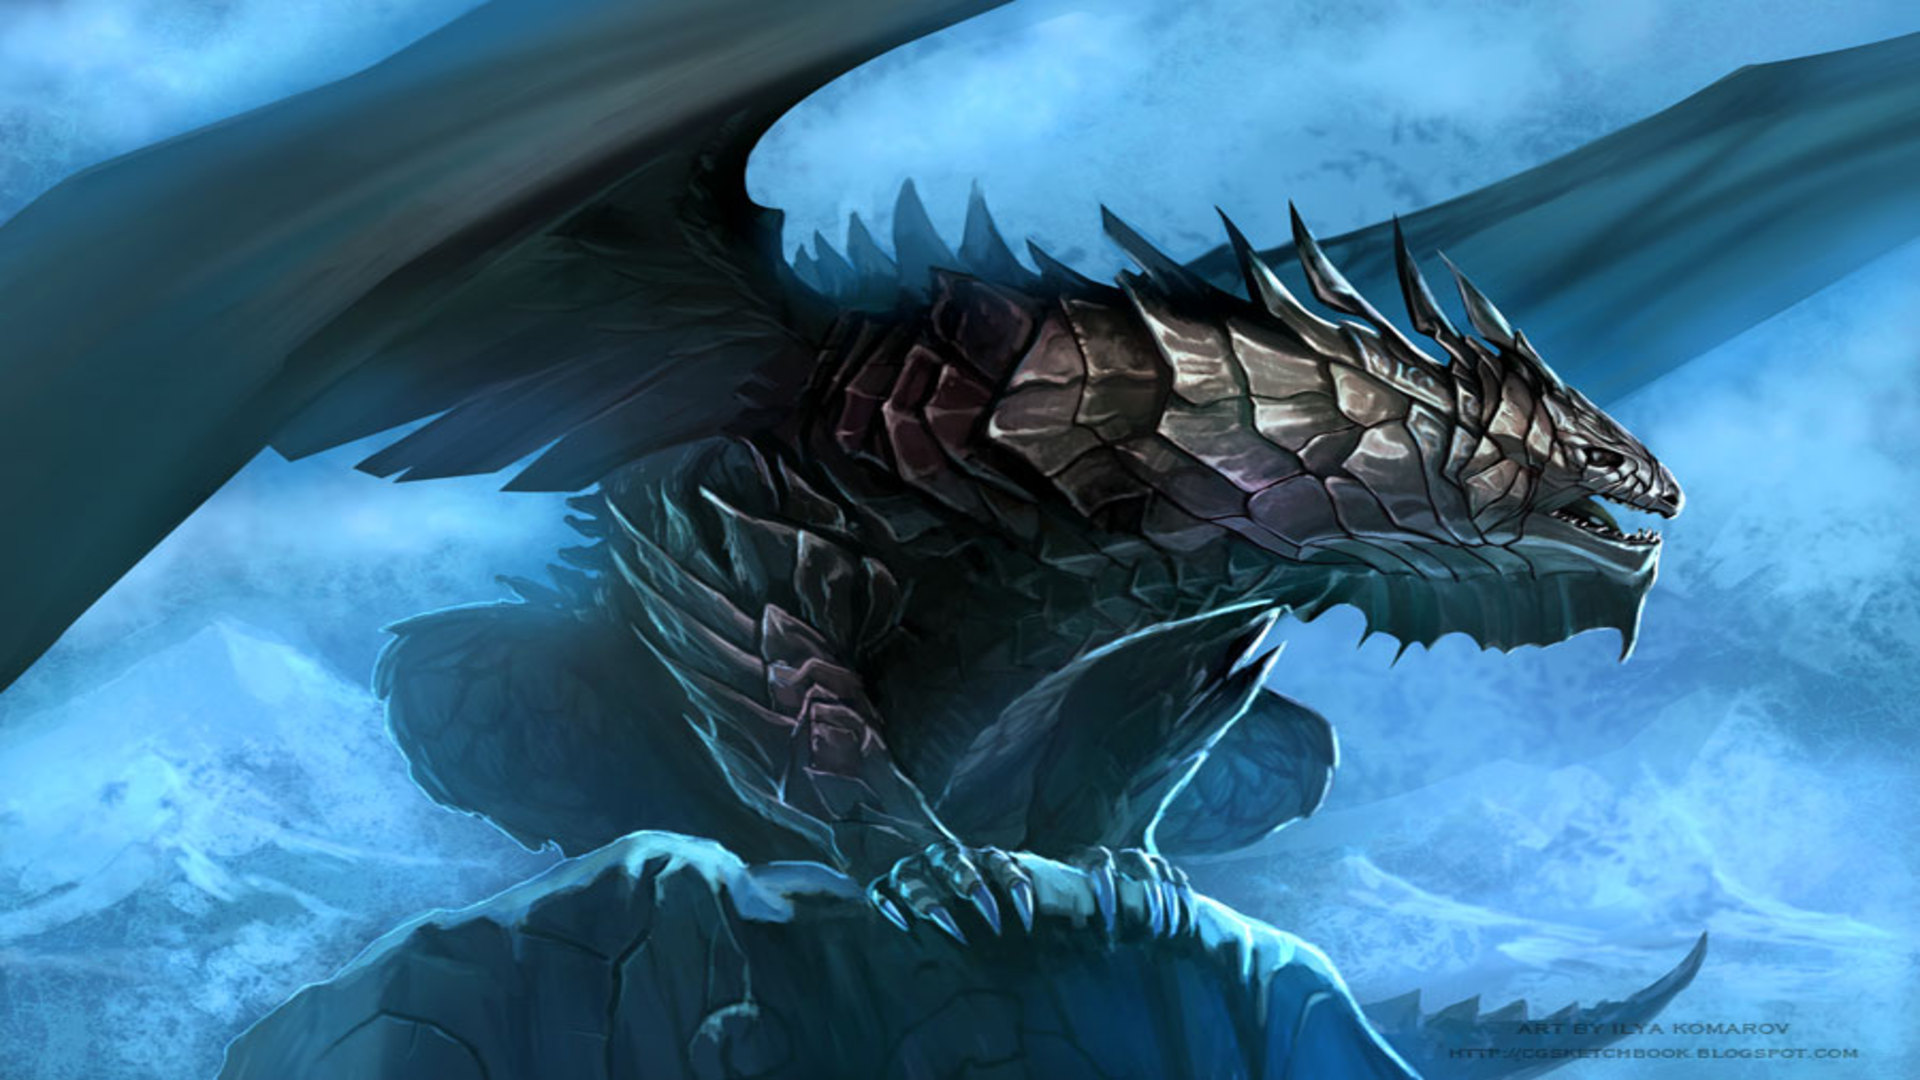 4k cool dragon wallpapers wallpapersafari - Dragon backgrounds 1920x1080 ...